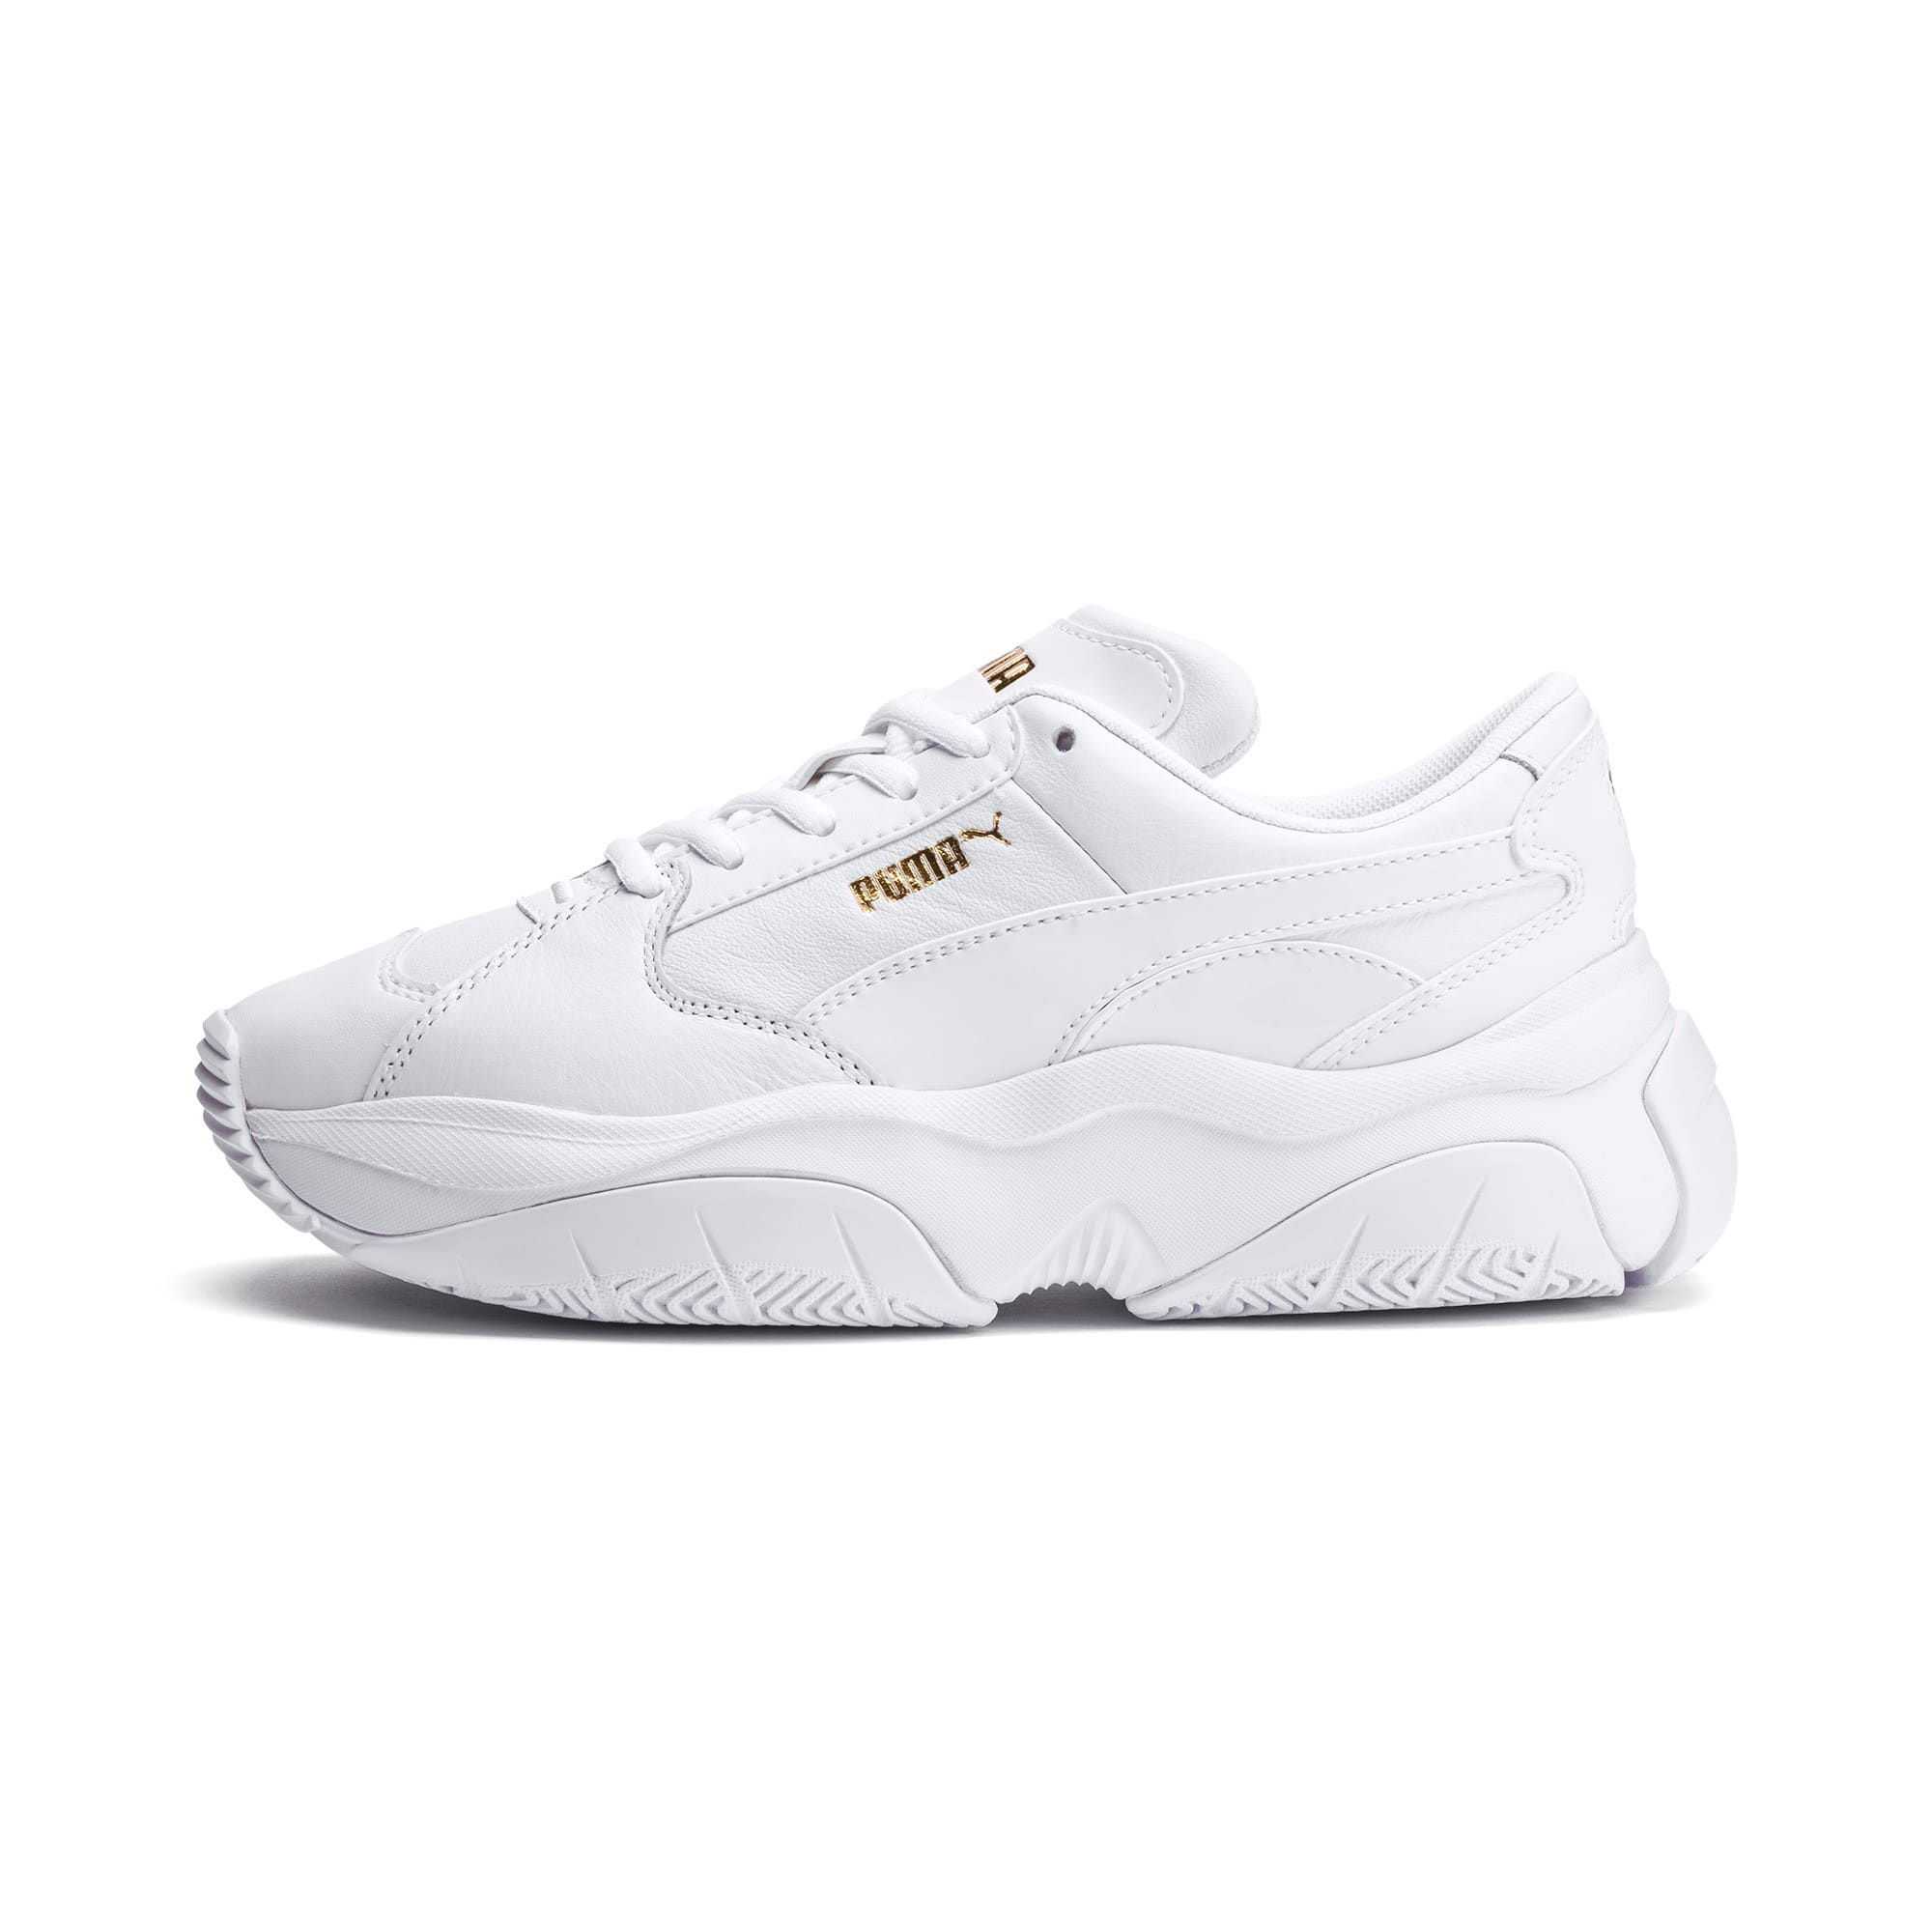 Thumbnail 1 of STORM.Y Leather Women's Trainers, Puma White, medium